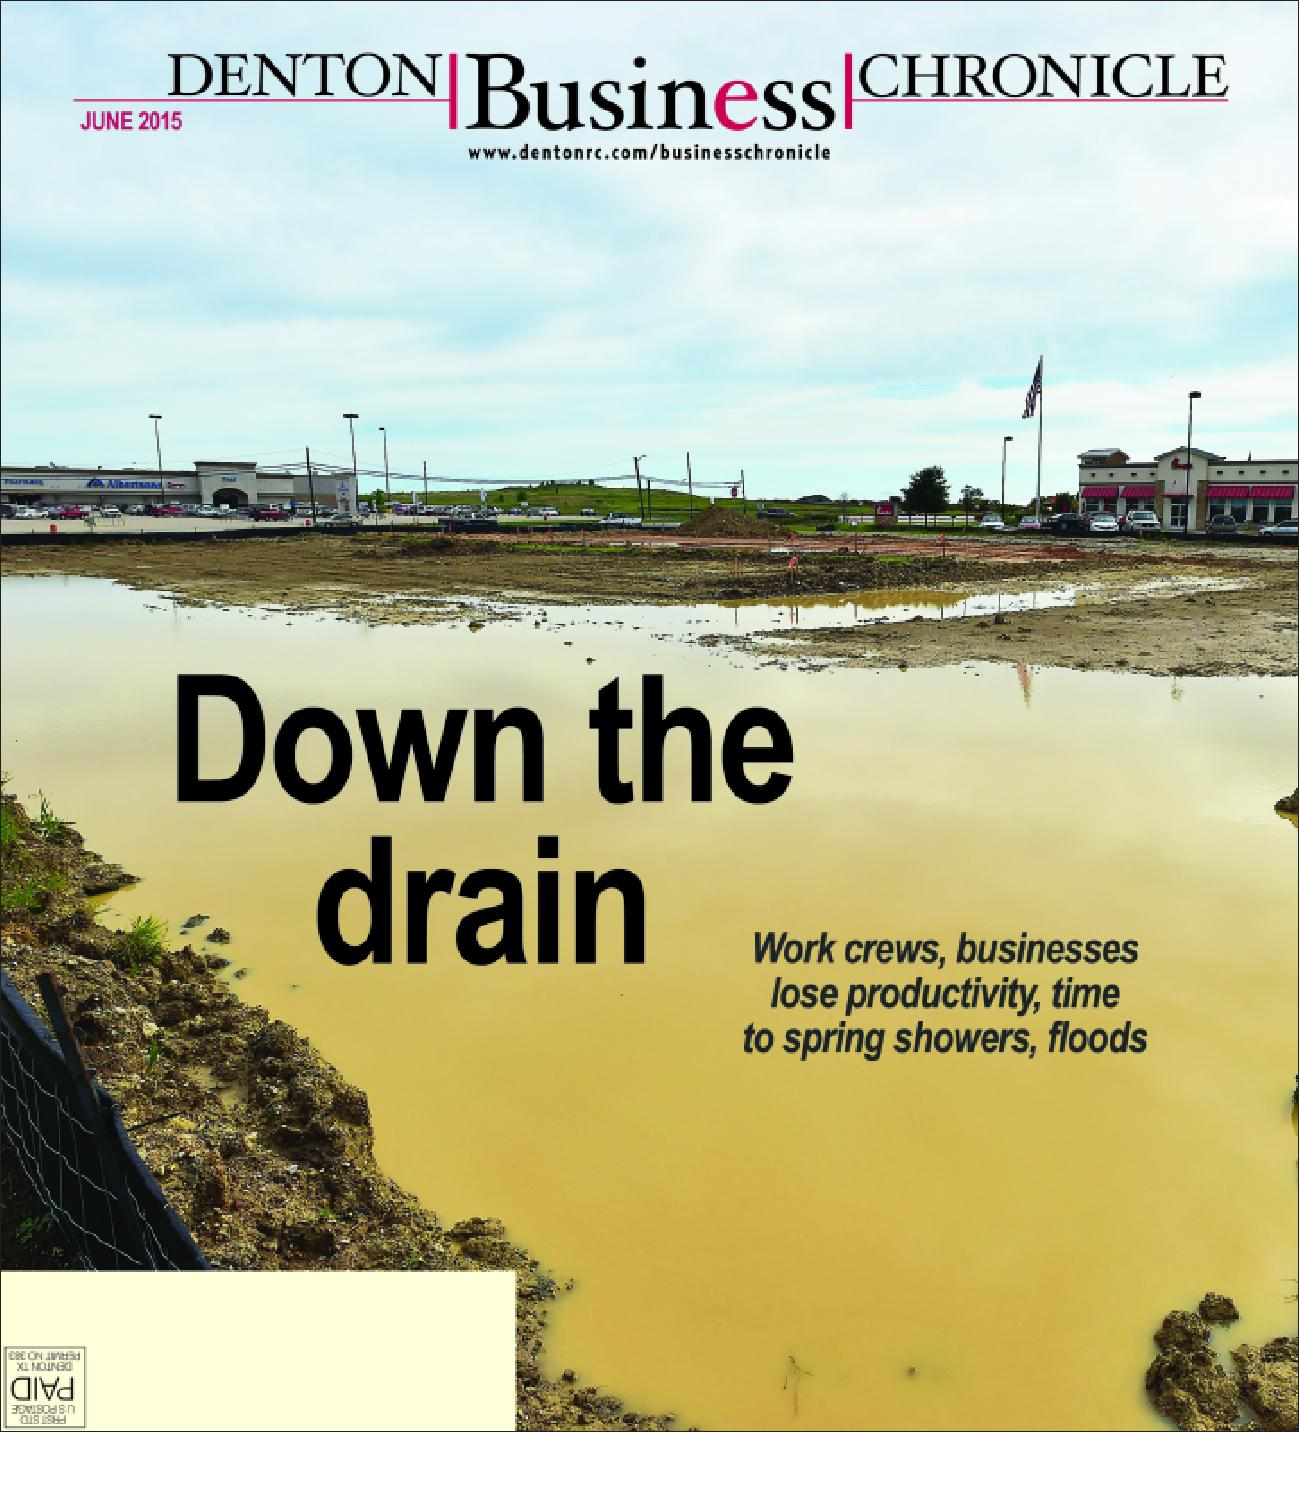 June Denton Business Chronicle 2015 by Larry McBride issuu